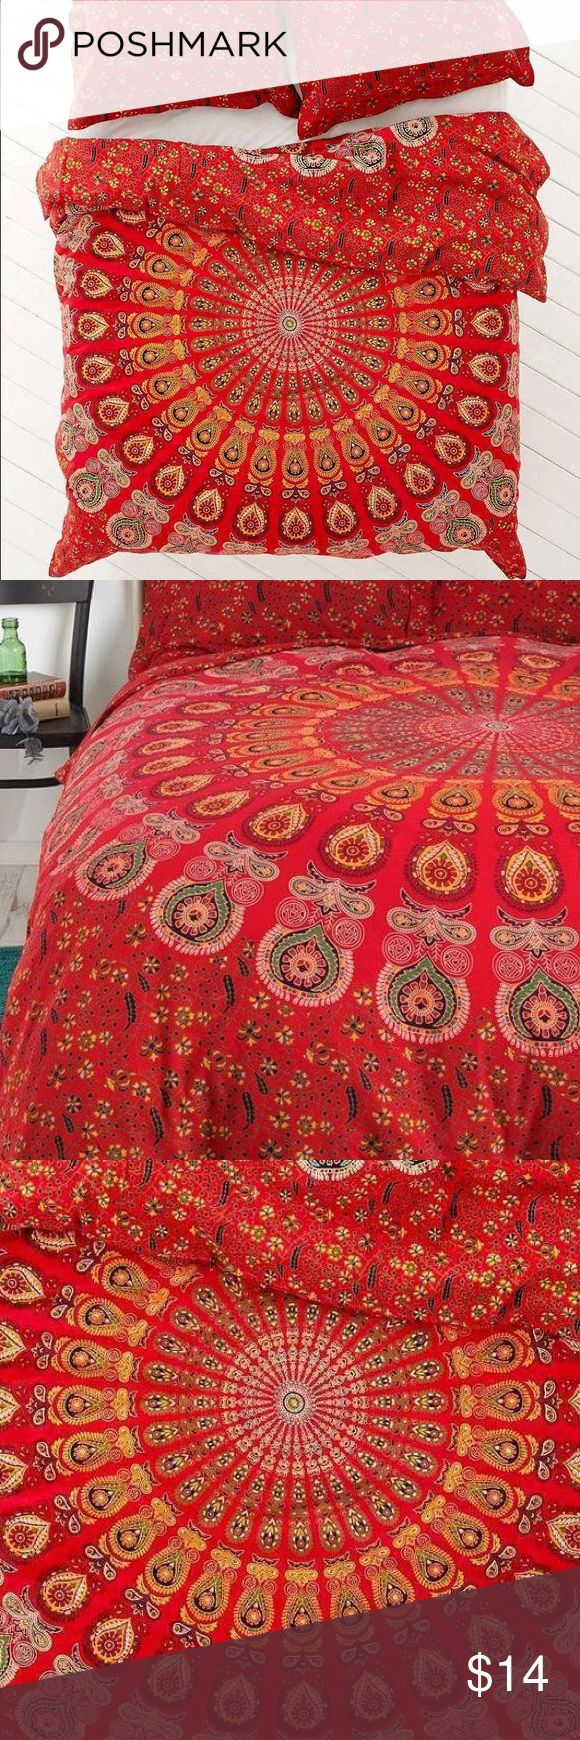 Red bed sheet texture - Urban Outfitters Red Duvet Cover Comforter